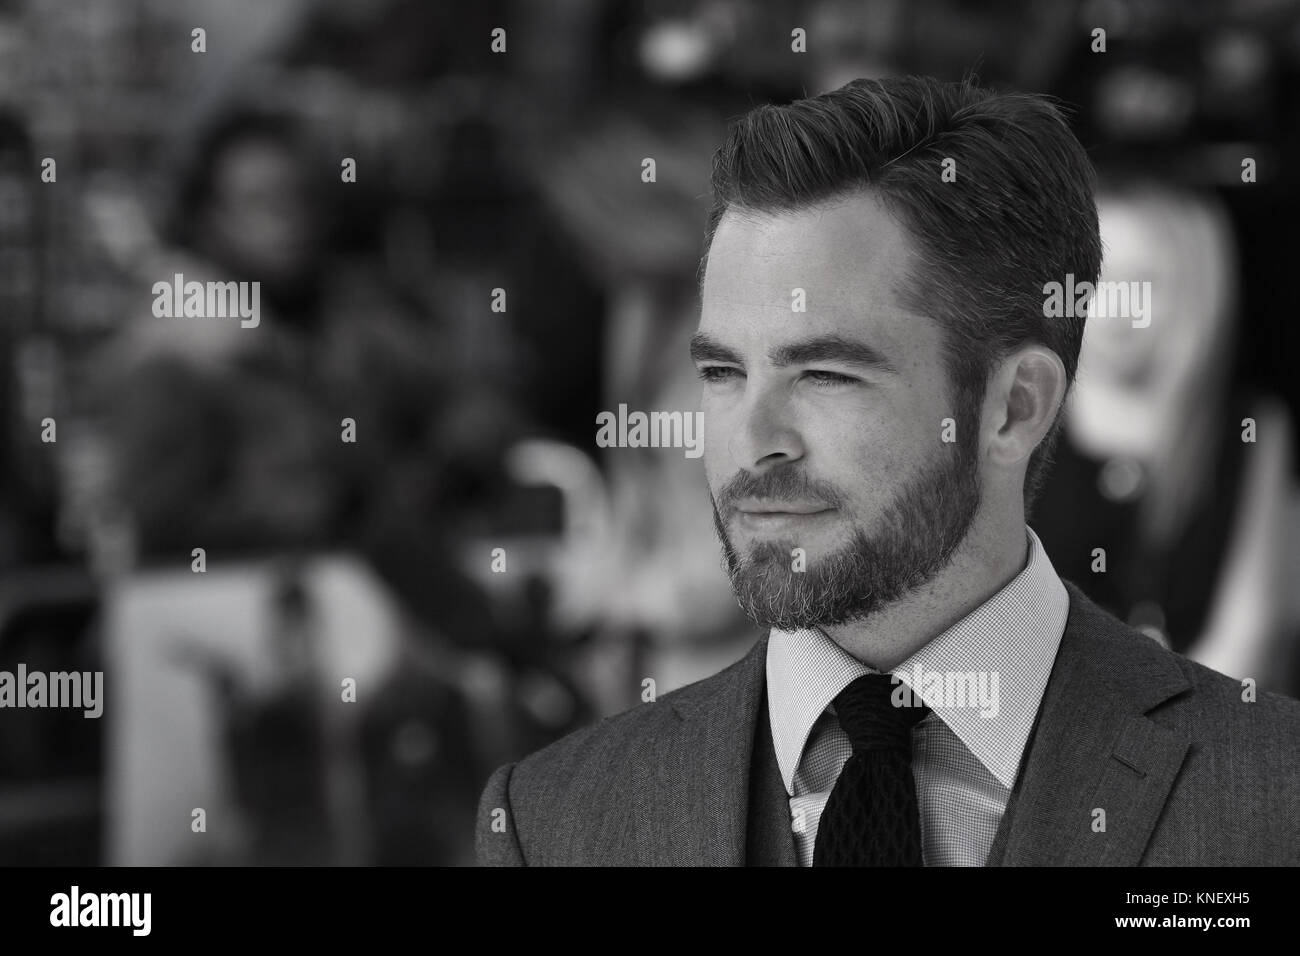 London, UK, 2nd May, 2013: Image digitally altered to monochrome Chris Pine attends the UK Premiere of 'Star - Stock Image